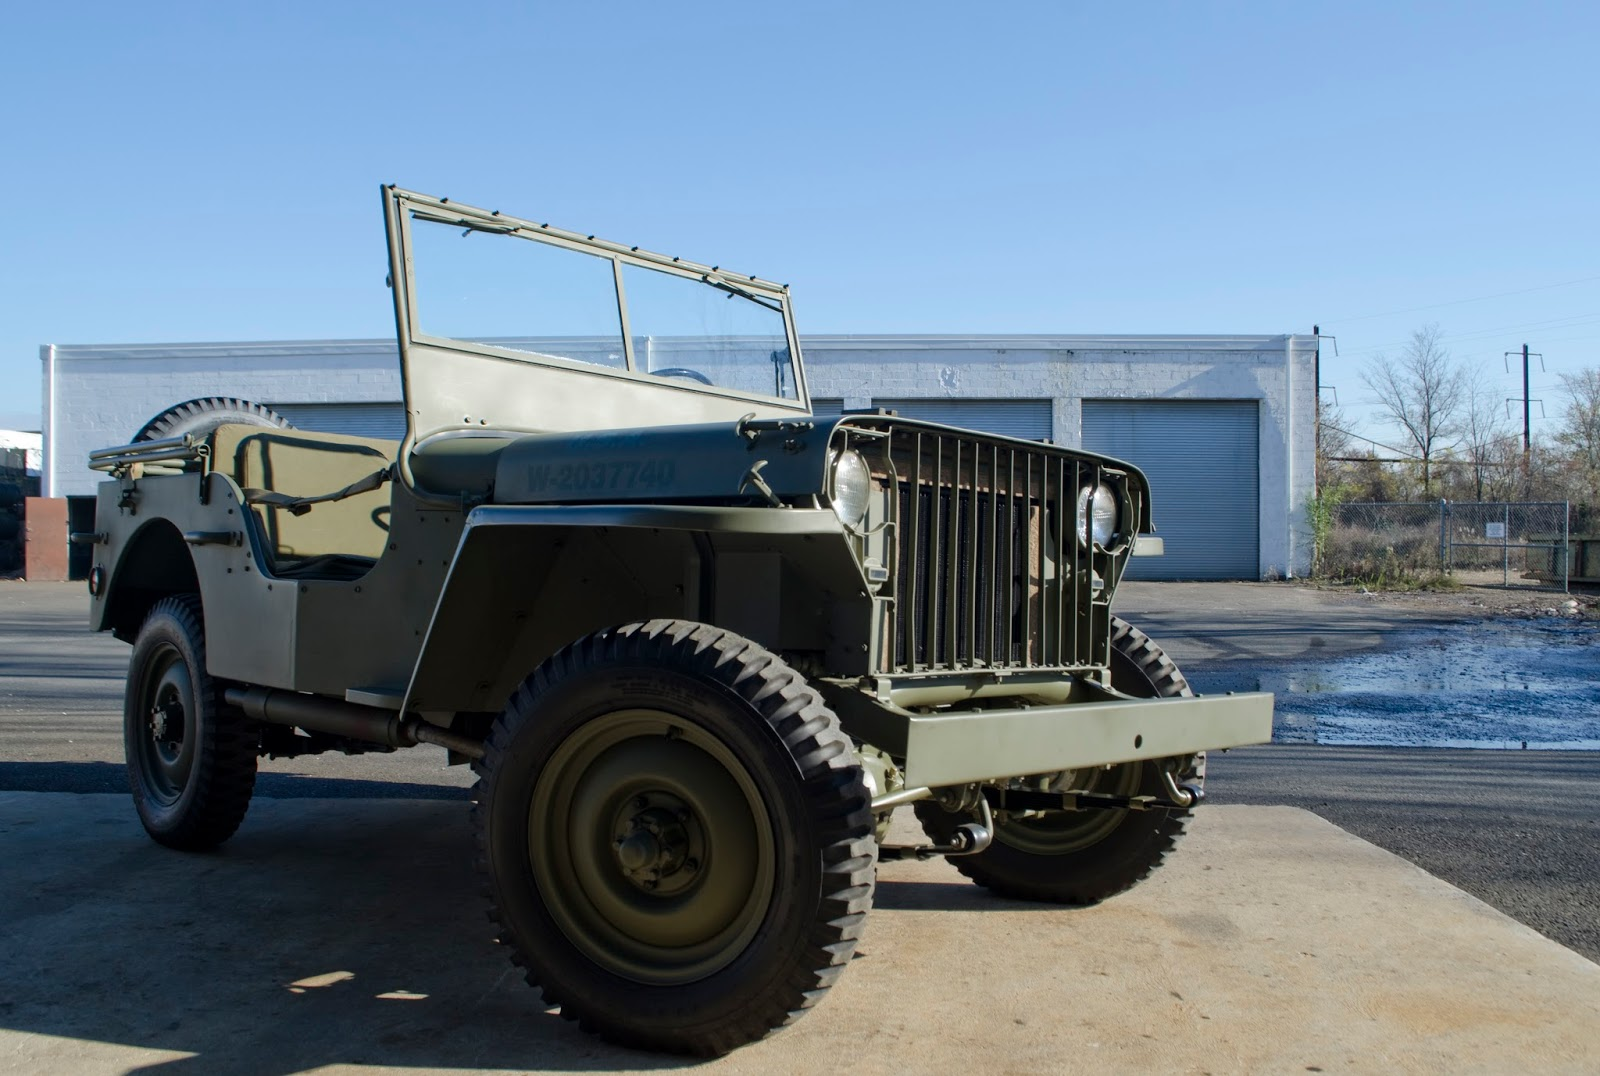 Ford Factory 5 >> War Jeep Stories: The Original Willys Jeep | 1941 Slat Grille (PHOTOS, VIDEO)